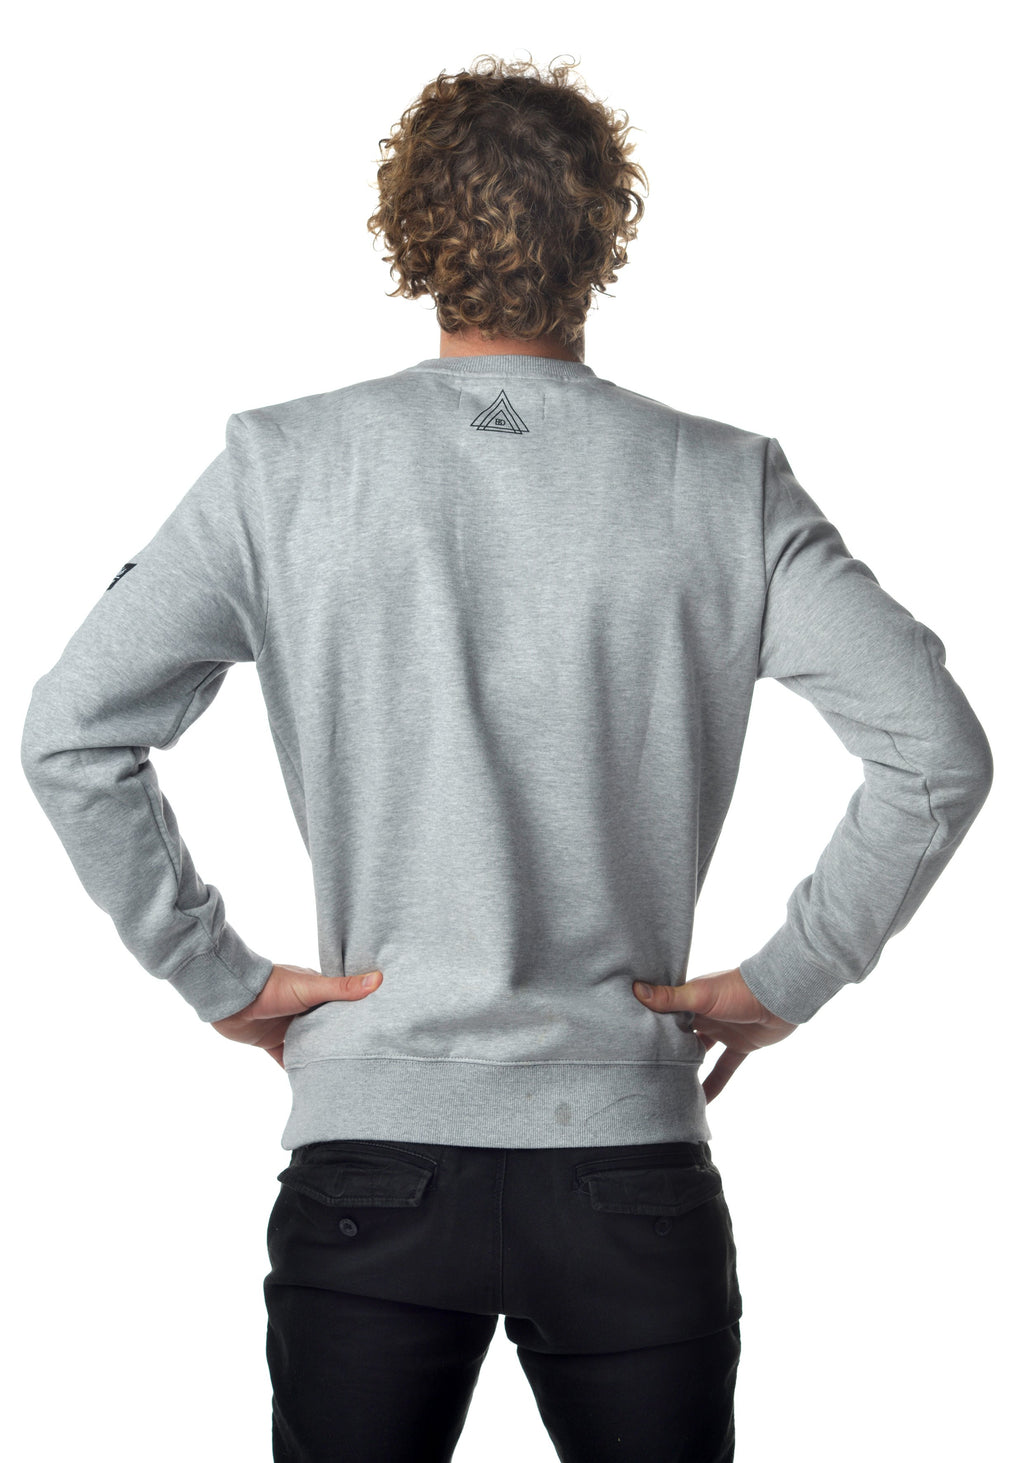 Taschen Grantler Sweatshirt grey Men